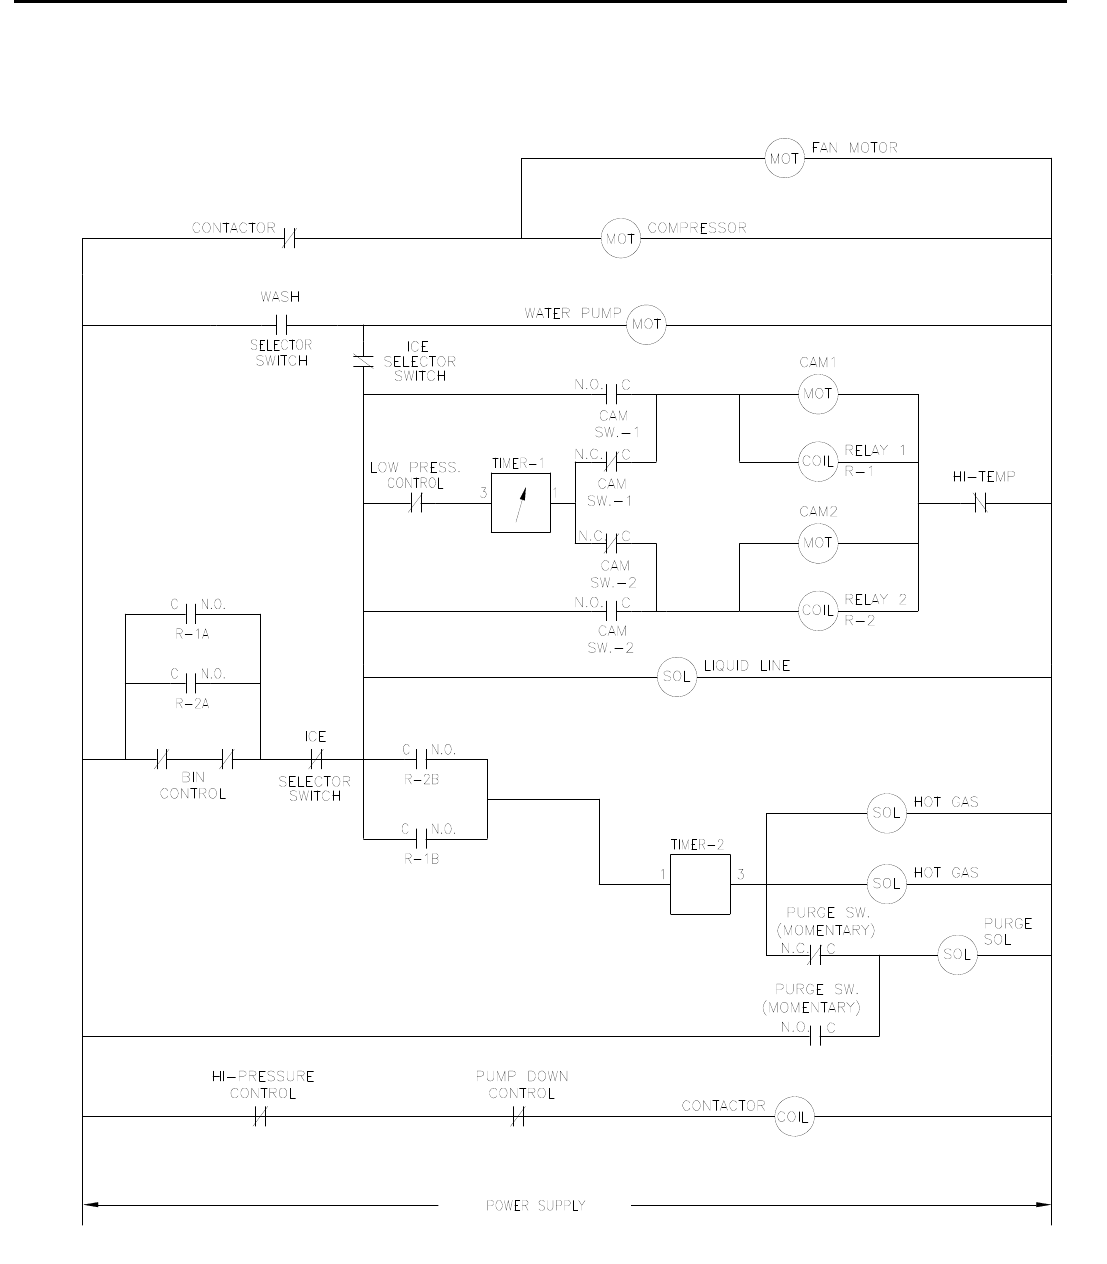 Wiring Diagram On An Older Model Ice O Matic Free Download Page 111 Of Maker Ice0250 Series User Guide At